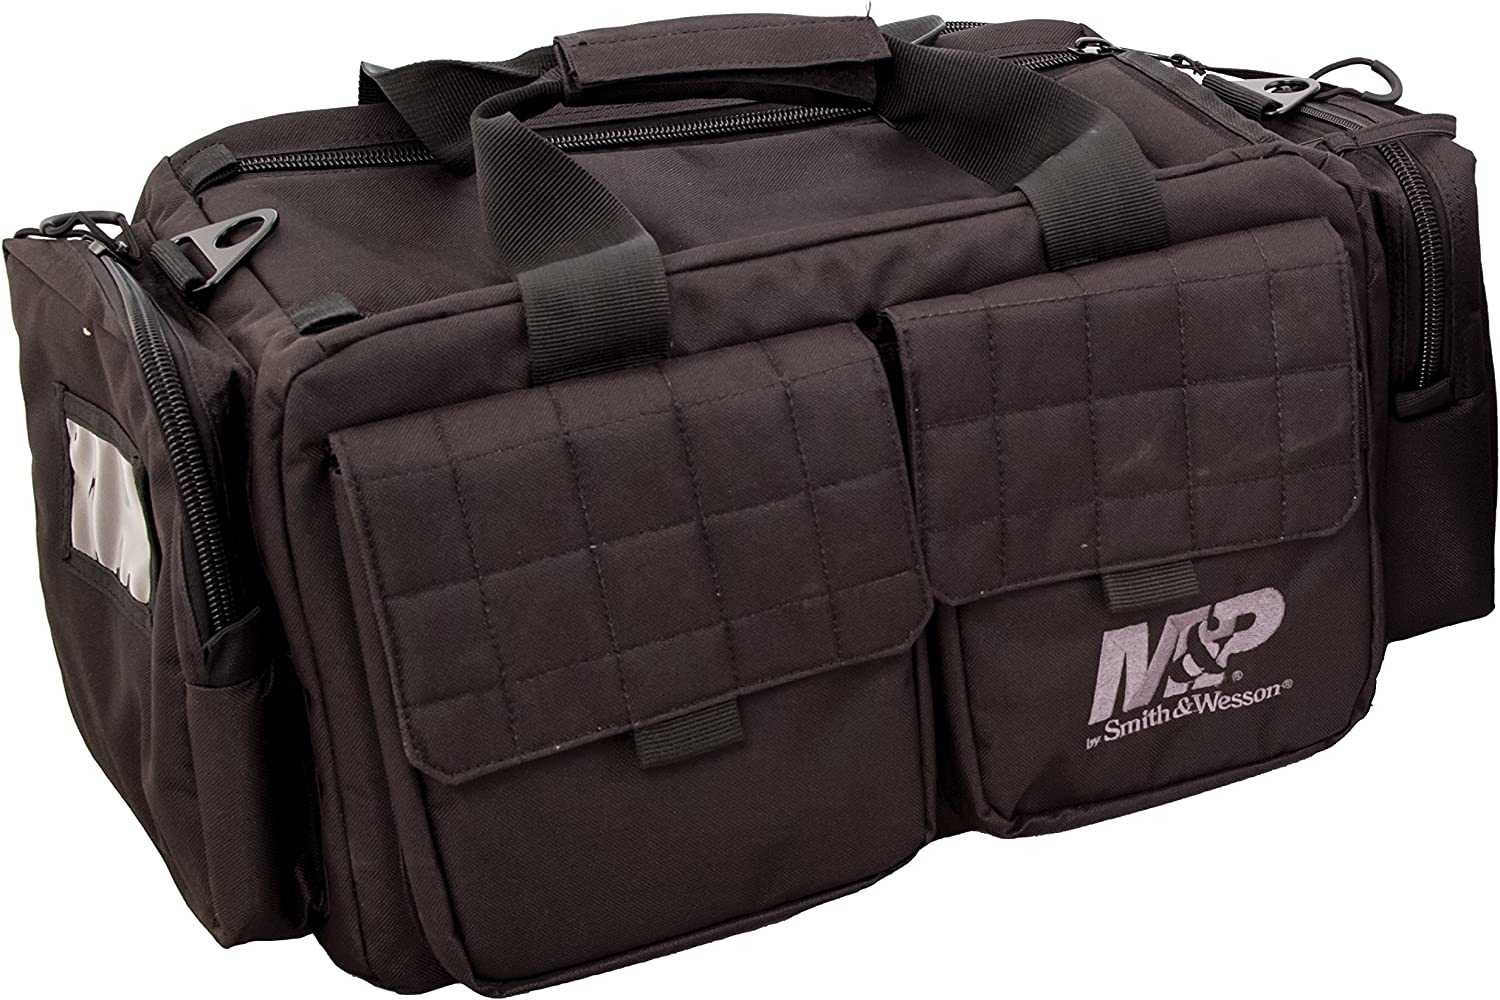 Smith Wesson M P Officer Tactical Range Bag with Weather Resistant Material for Shooting, Range, Storage and Transport